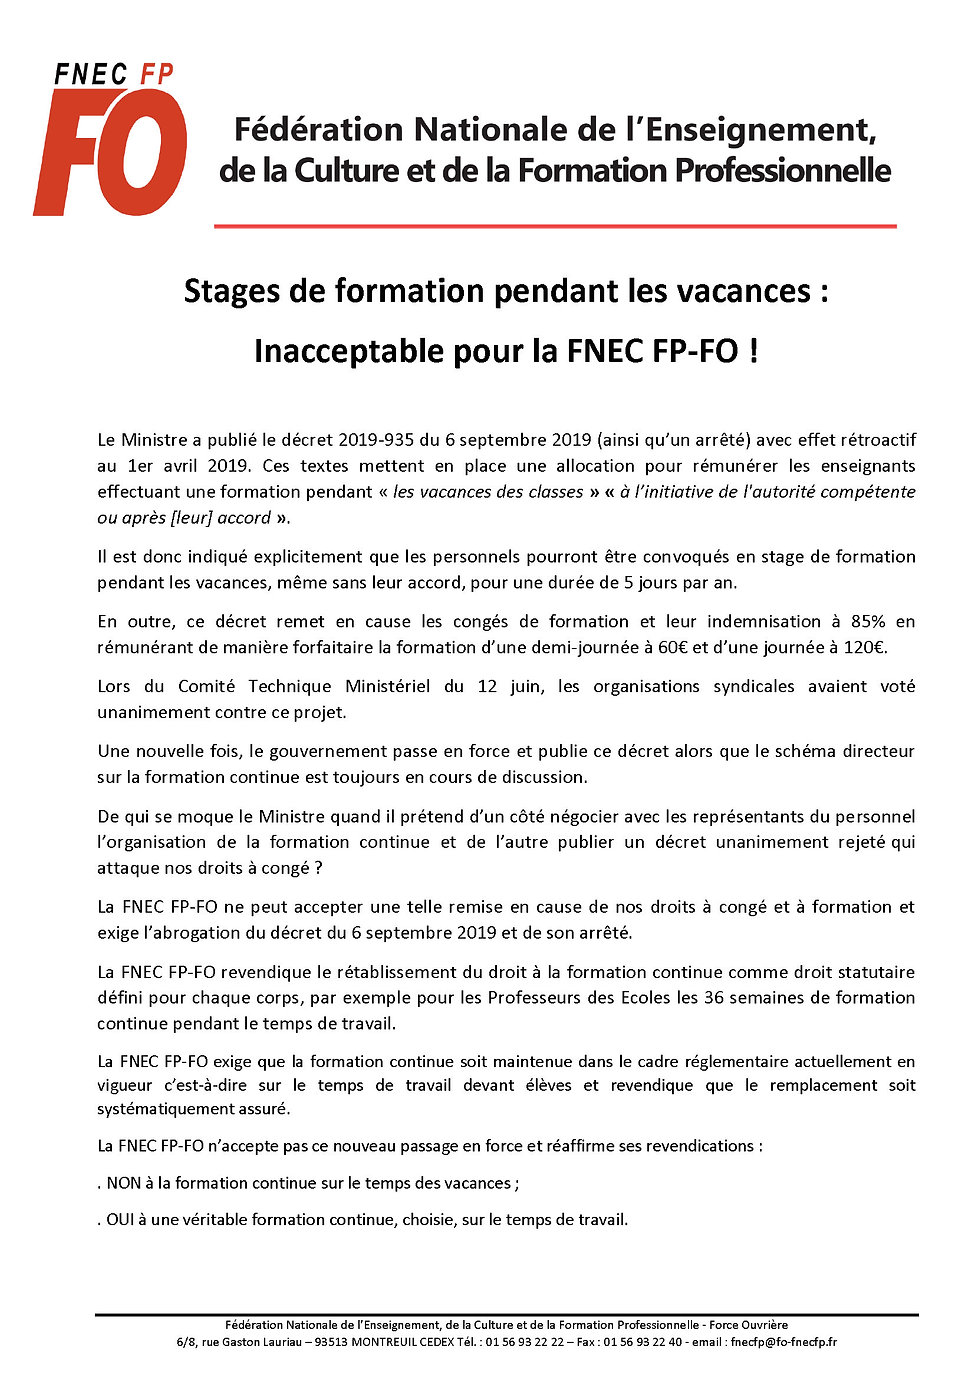 stages_formation_continue_pendant_les_va